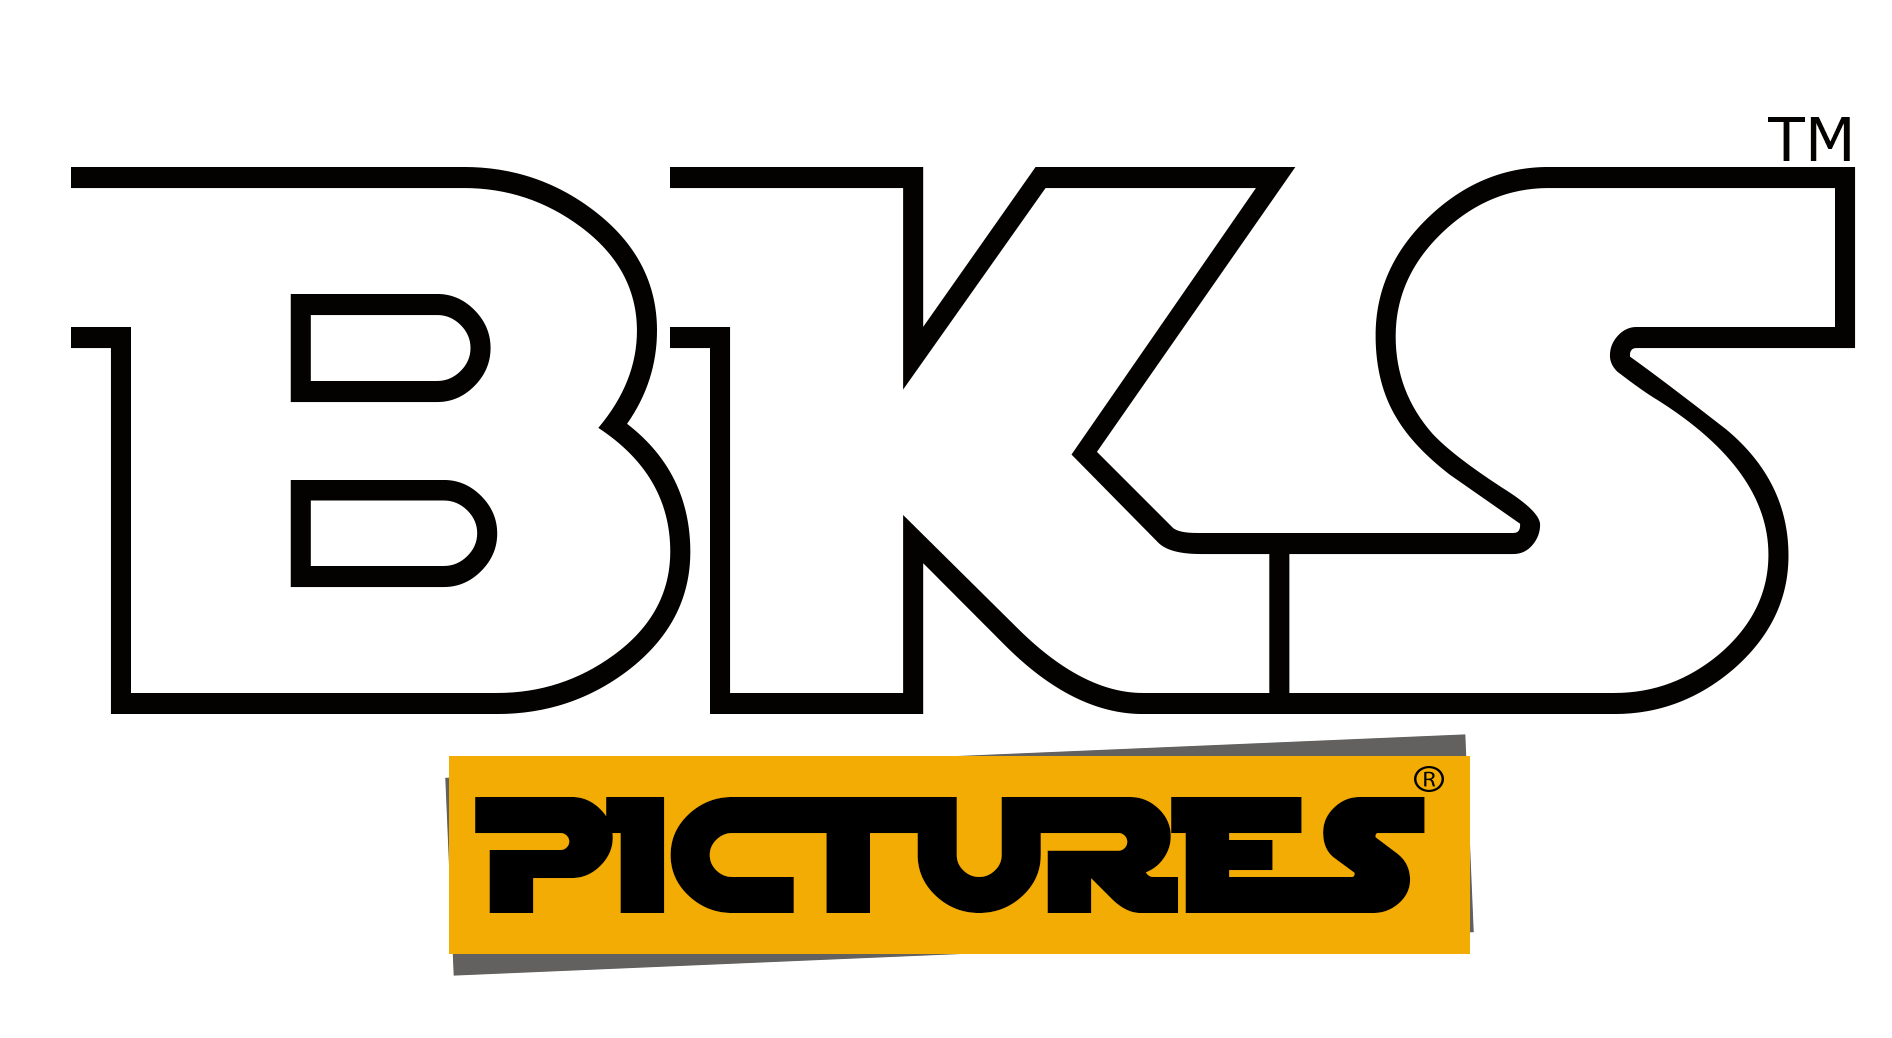 BKS Pictures